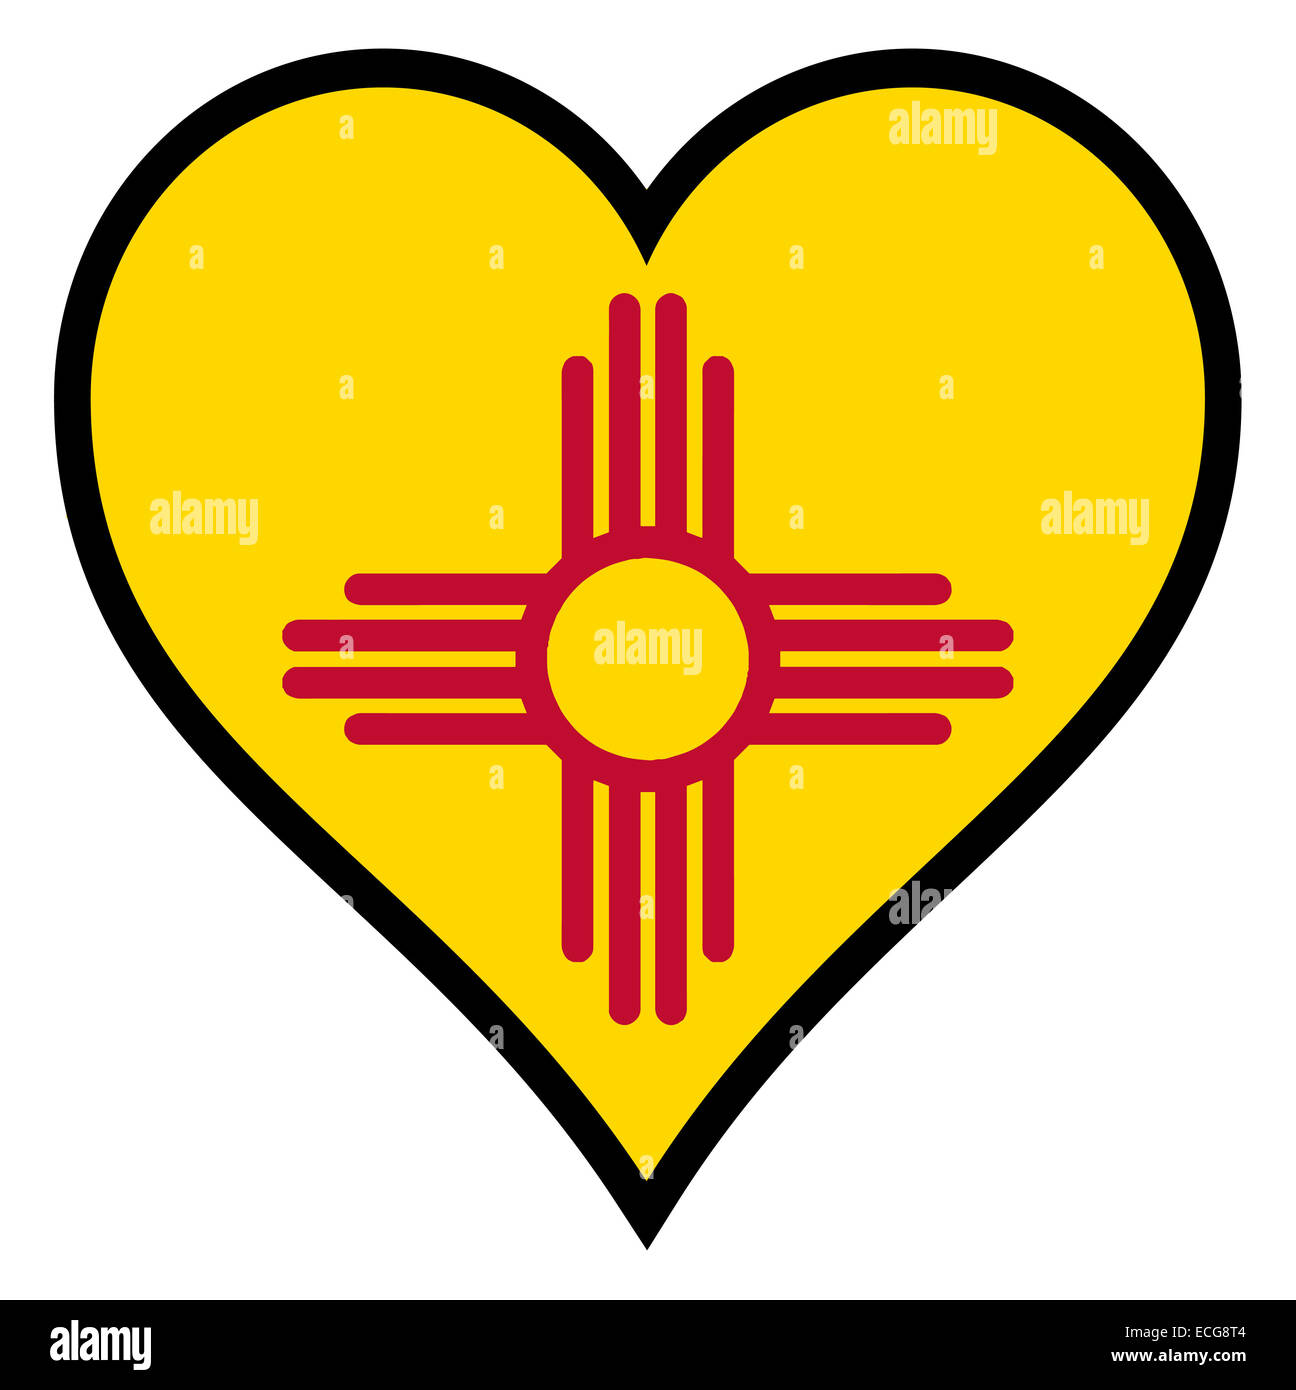 New mexico state flag within a heart all over a white background new mexico state flag within a heart all over a white background buycottarizona